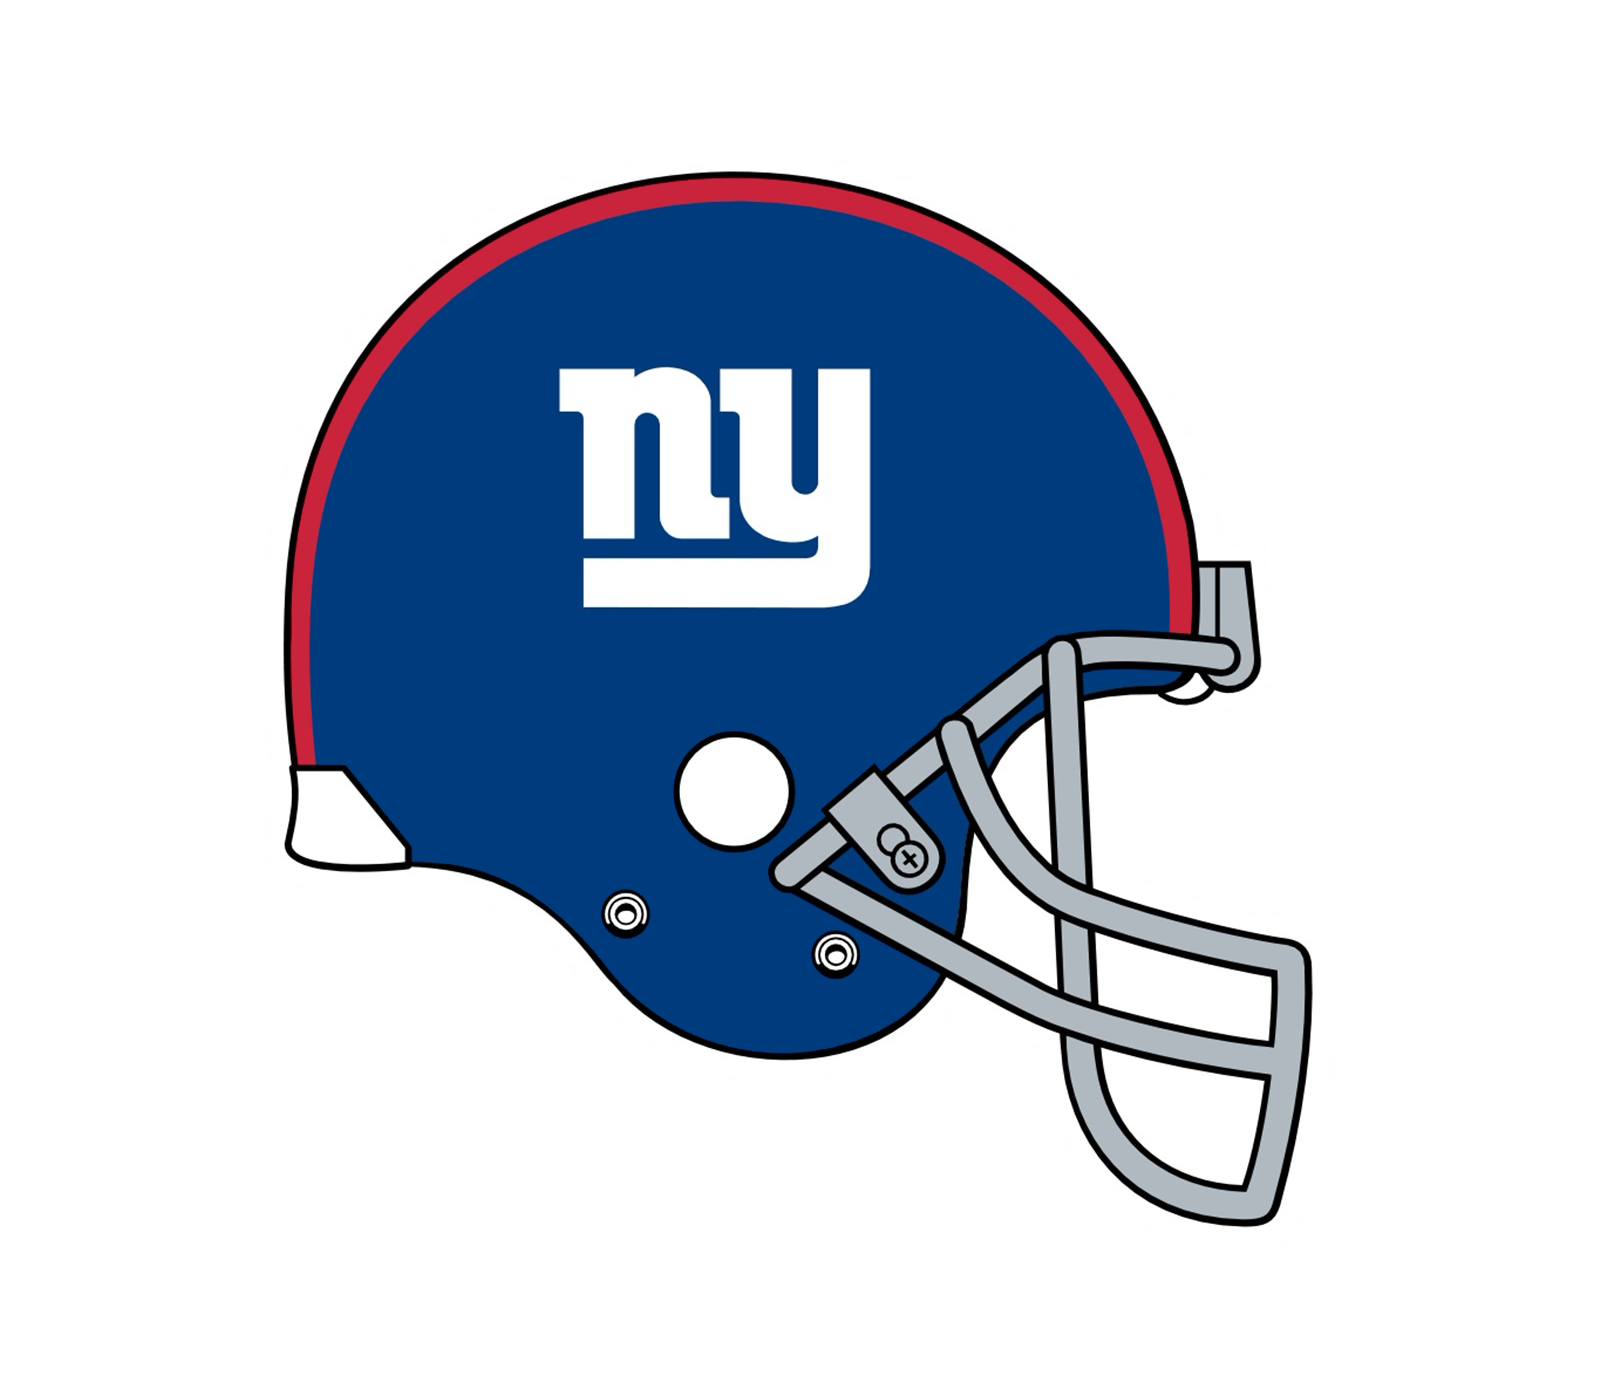 Giants nfl logo png helmet. New york dallas cowboys